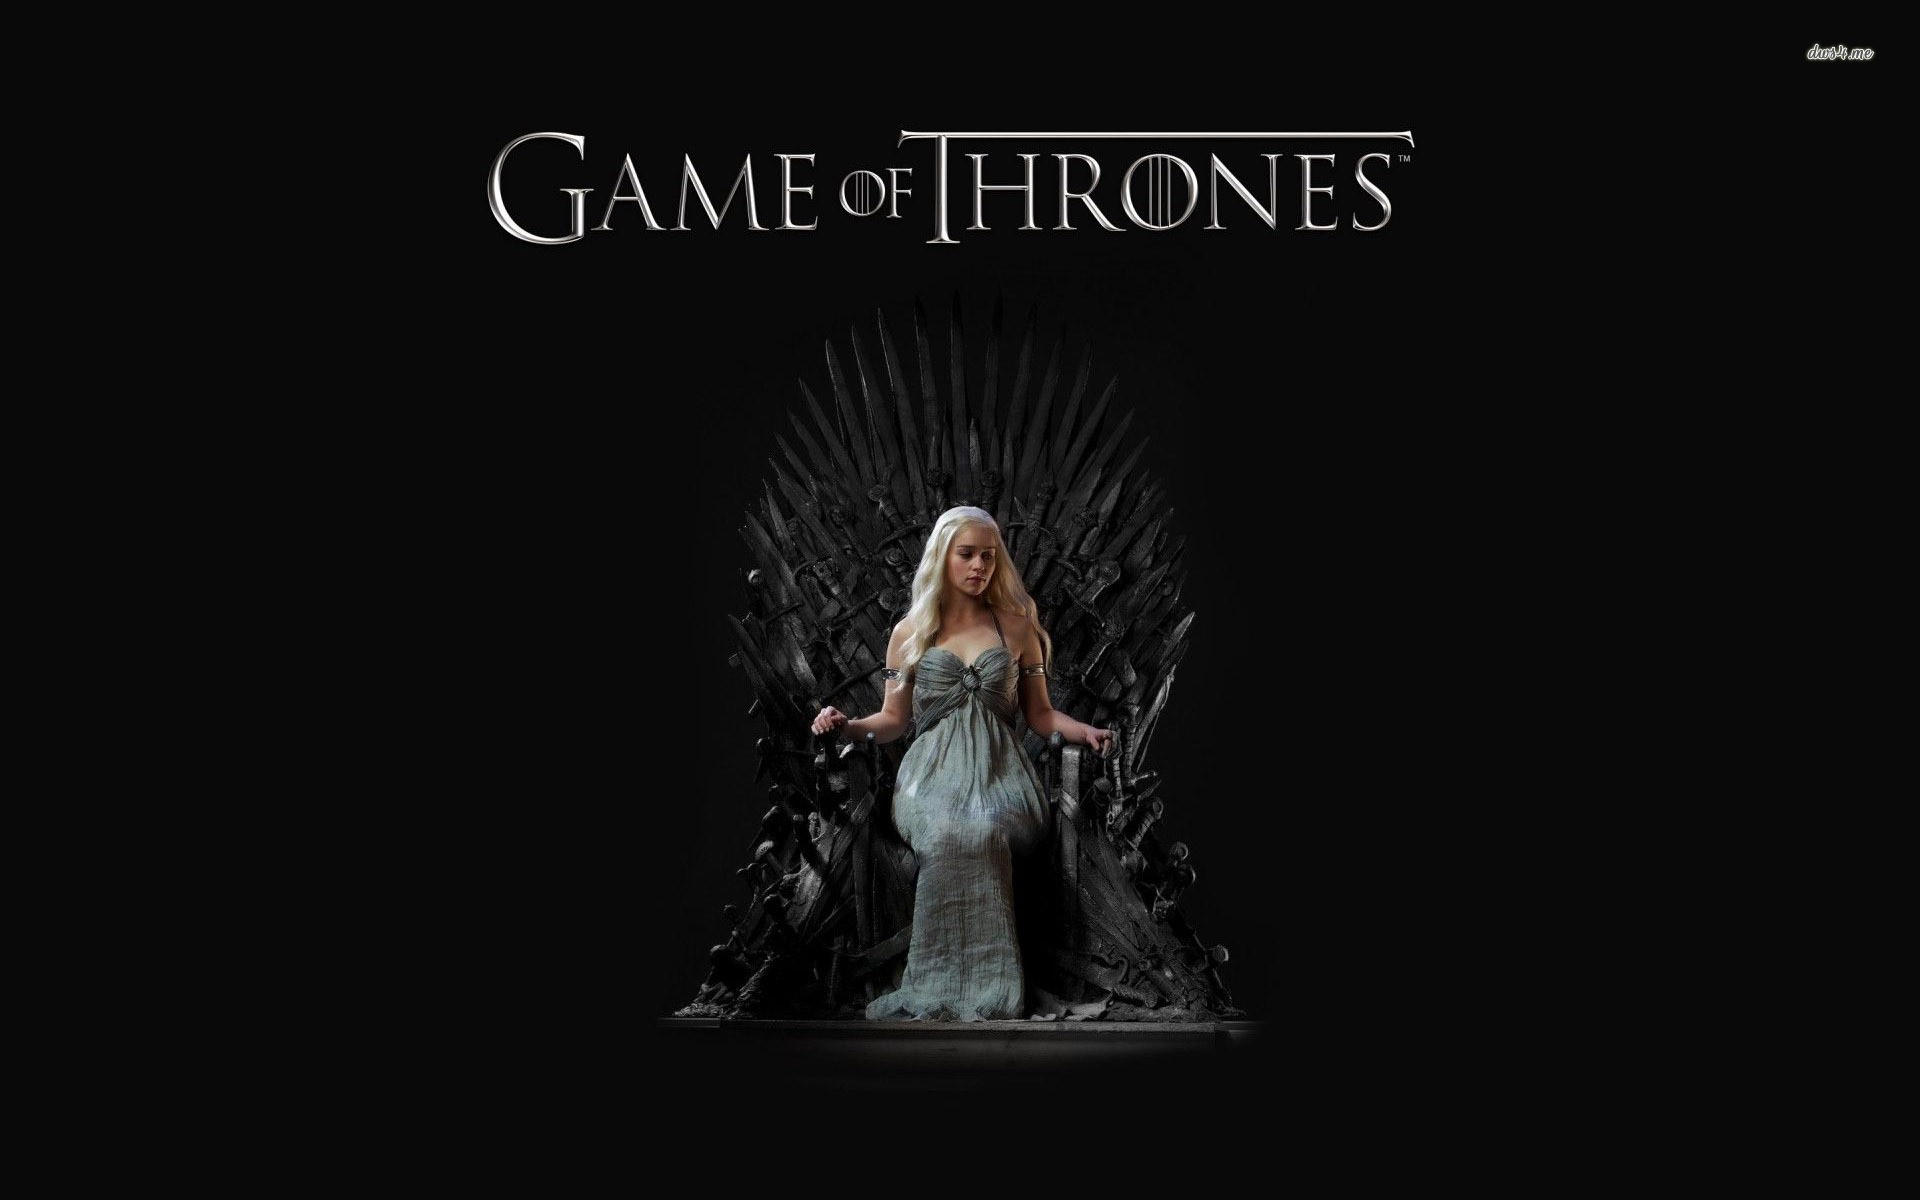 Eccezionale Game of Thrones wallpaper ·① Download free awesome HD wallpapers  JZ83